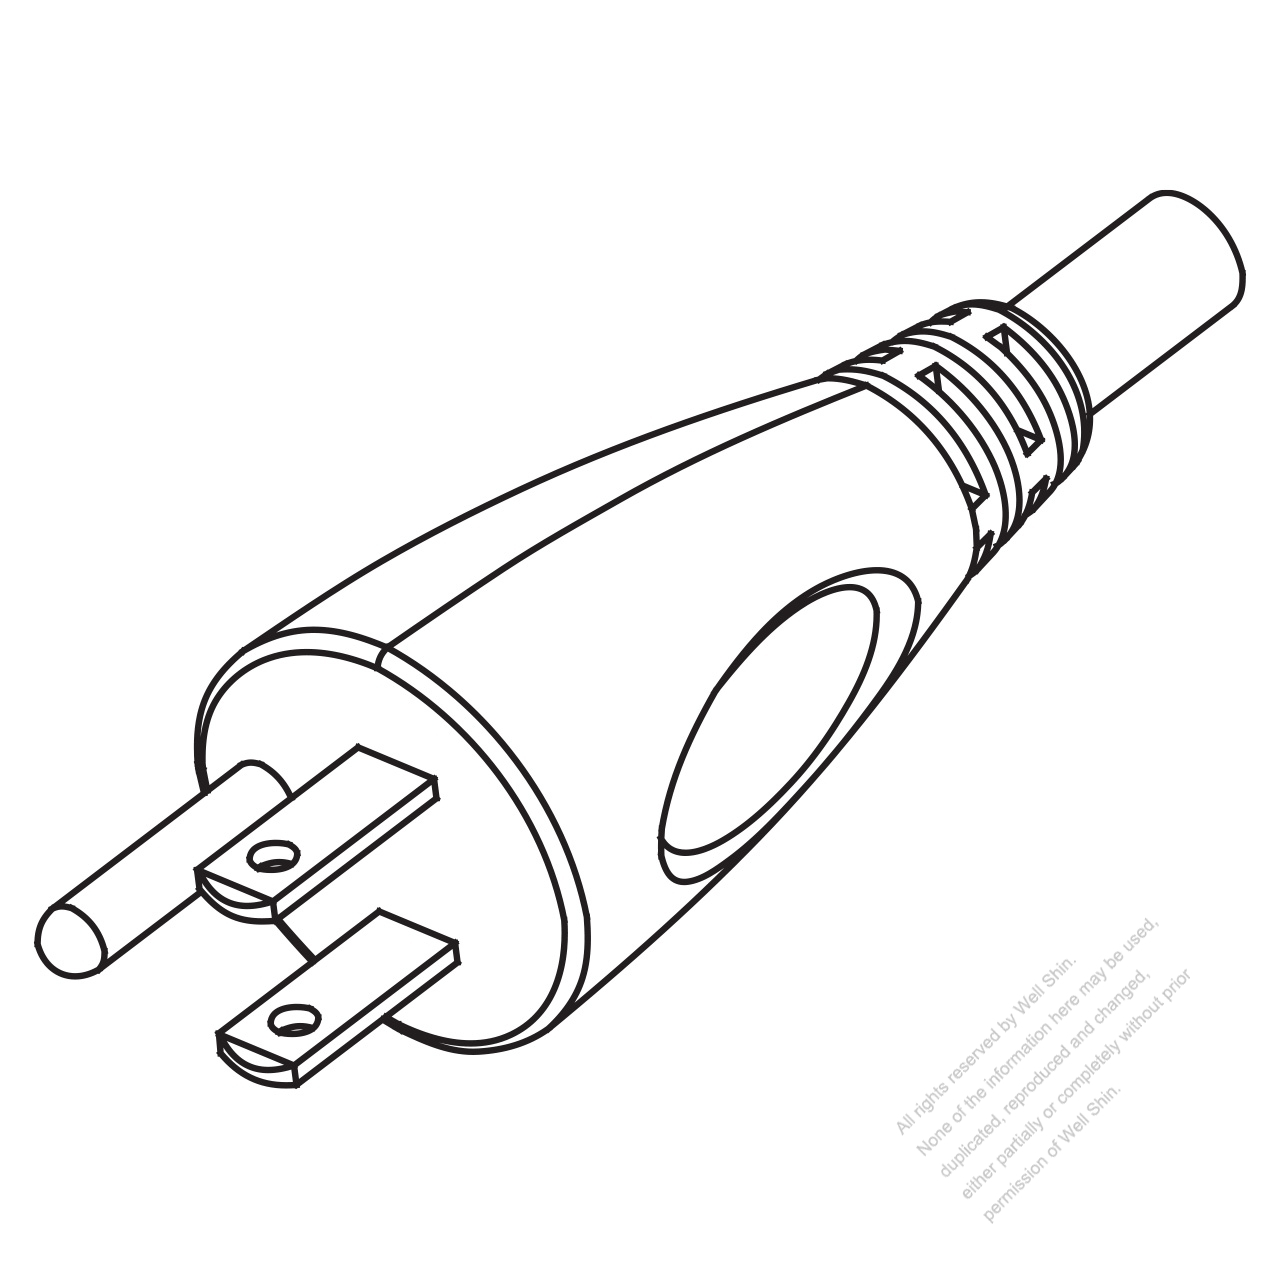 Locking Nema Configuration For Receptacle And Plug